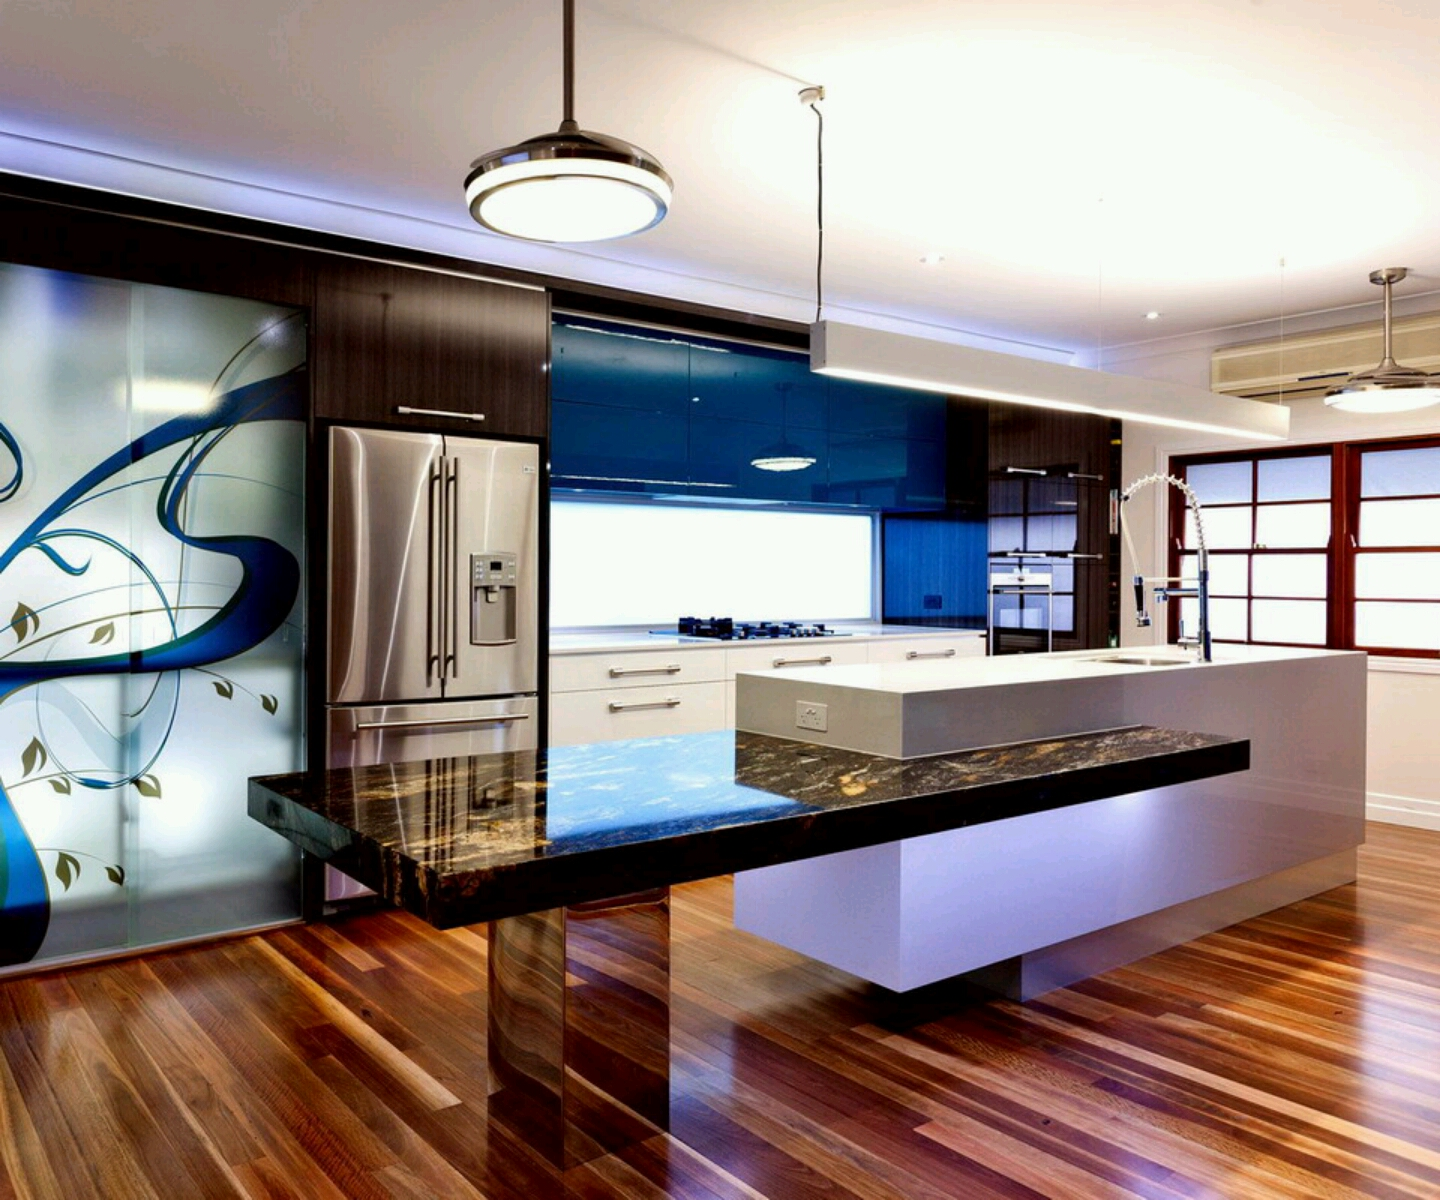 rumah rumah minimalis: Ultra modern kitchen designs ideas.